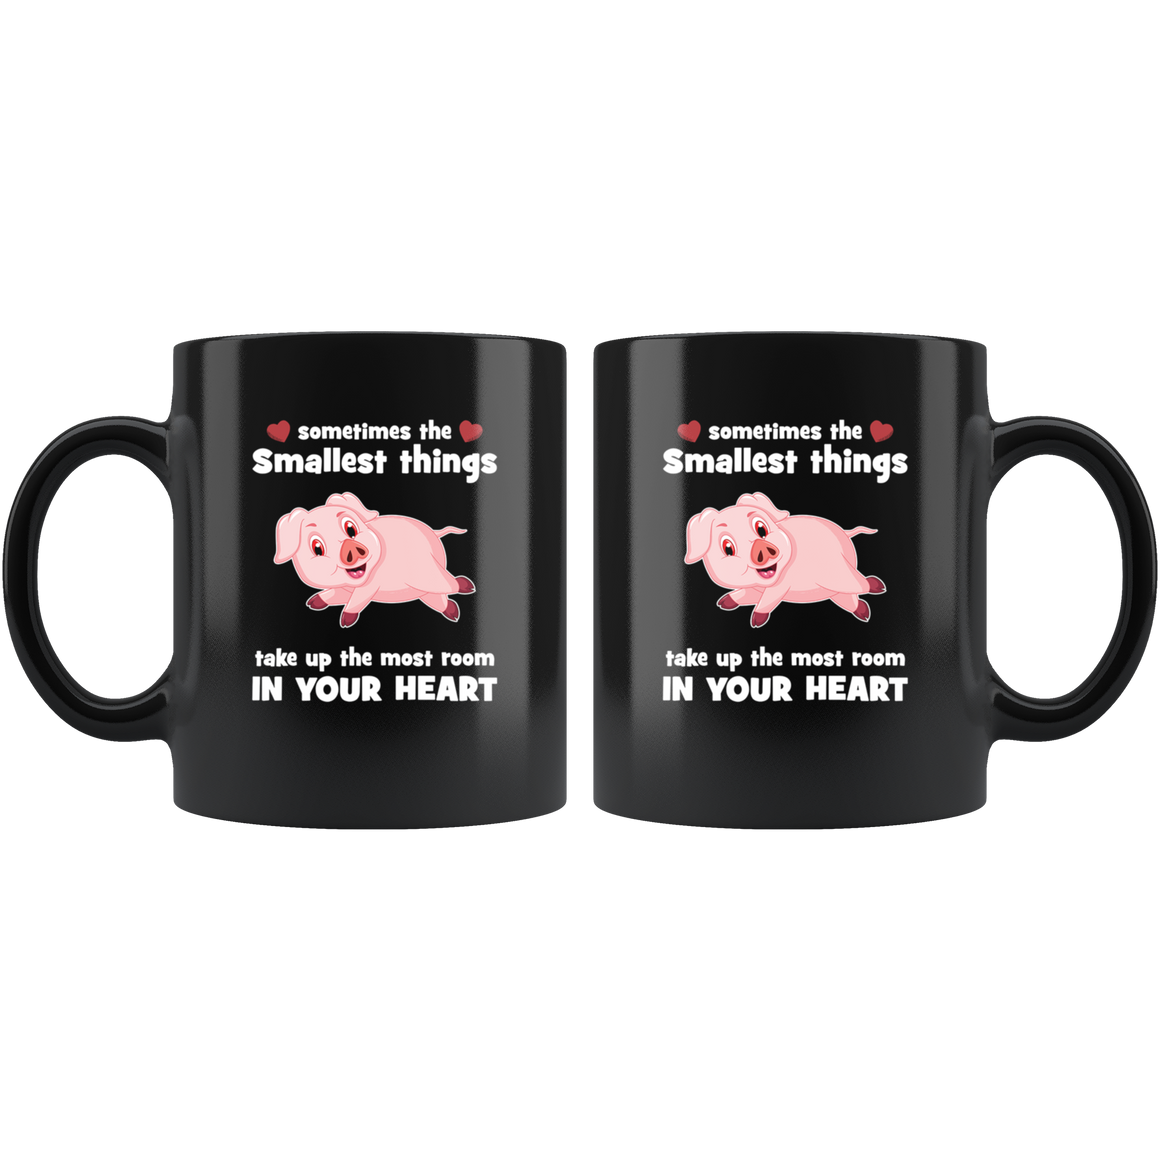 Take up the most room pig mug